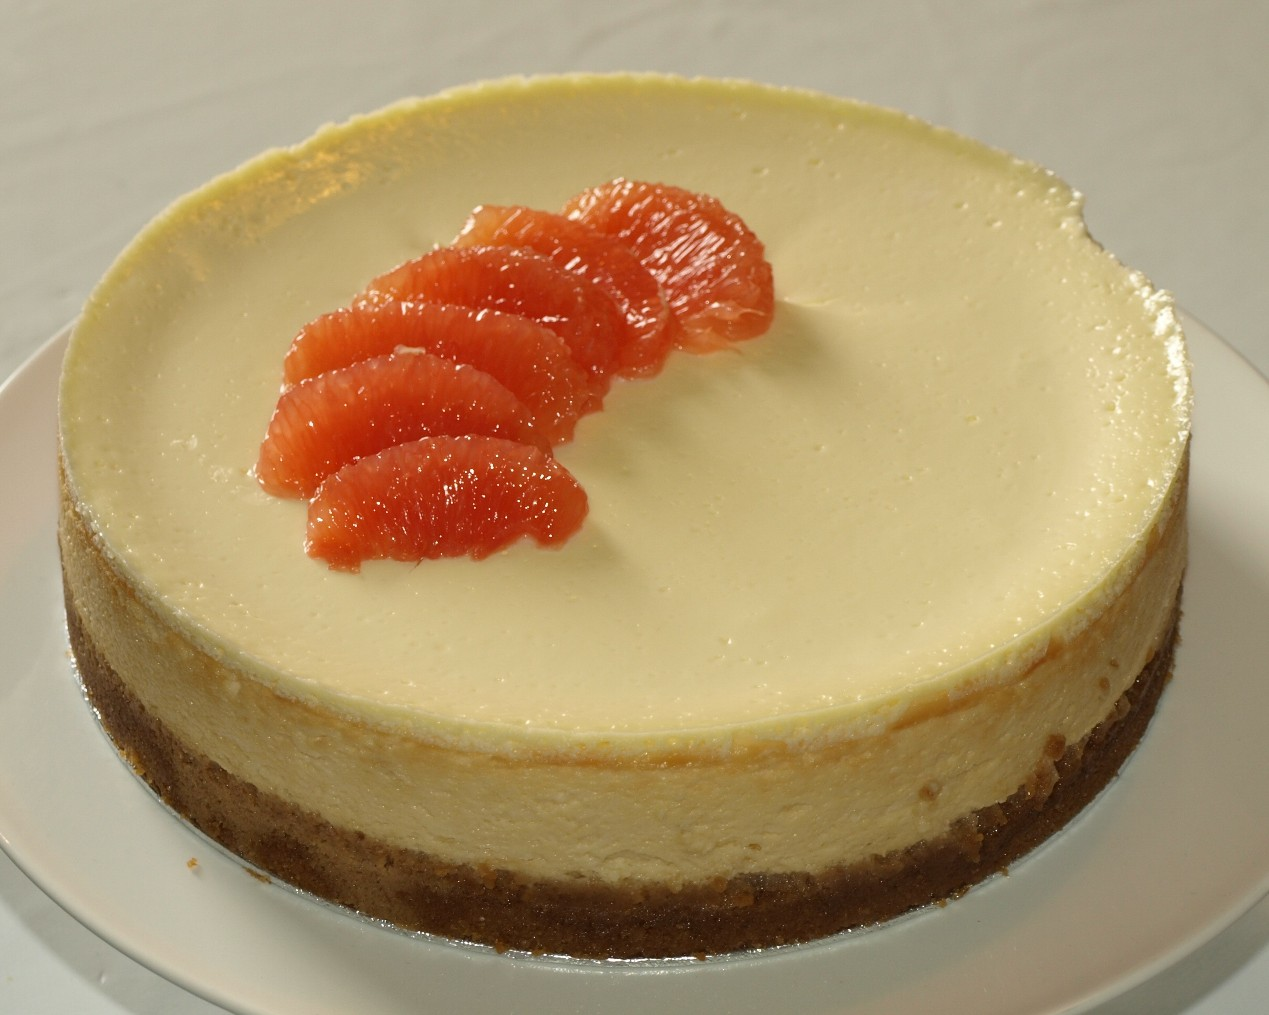 grapefruit cheesecake, cheesecake recipe, dessert, dessert recipe, cake